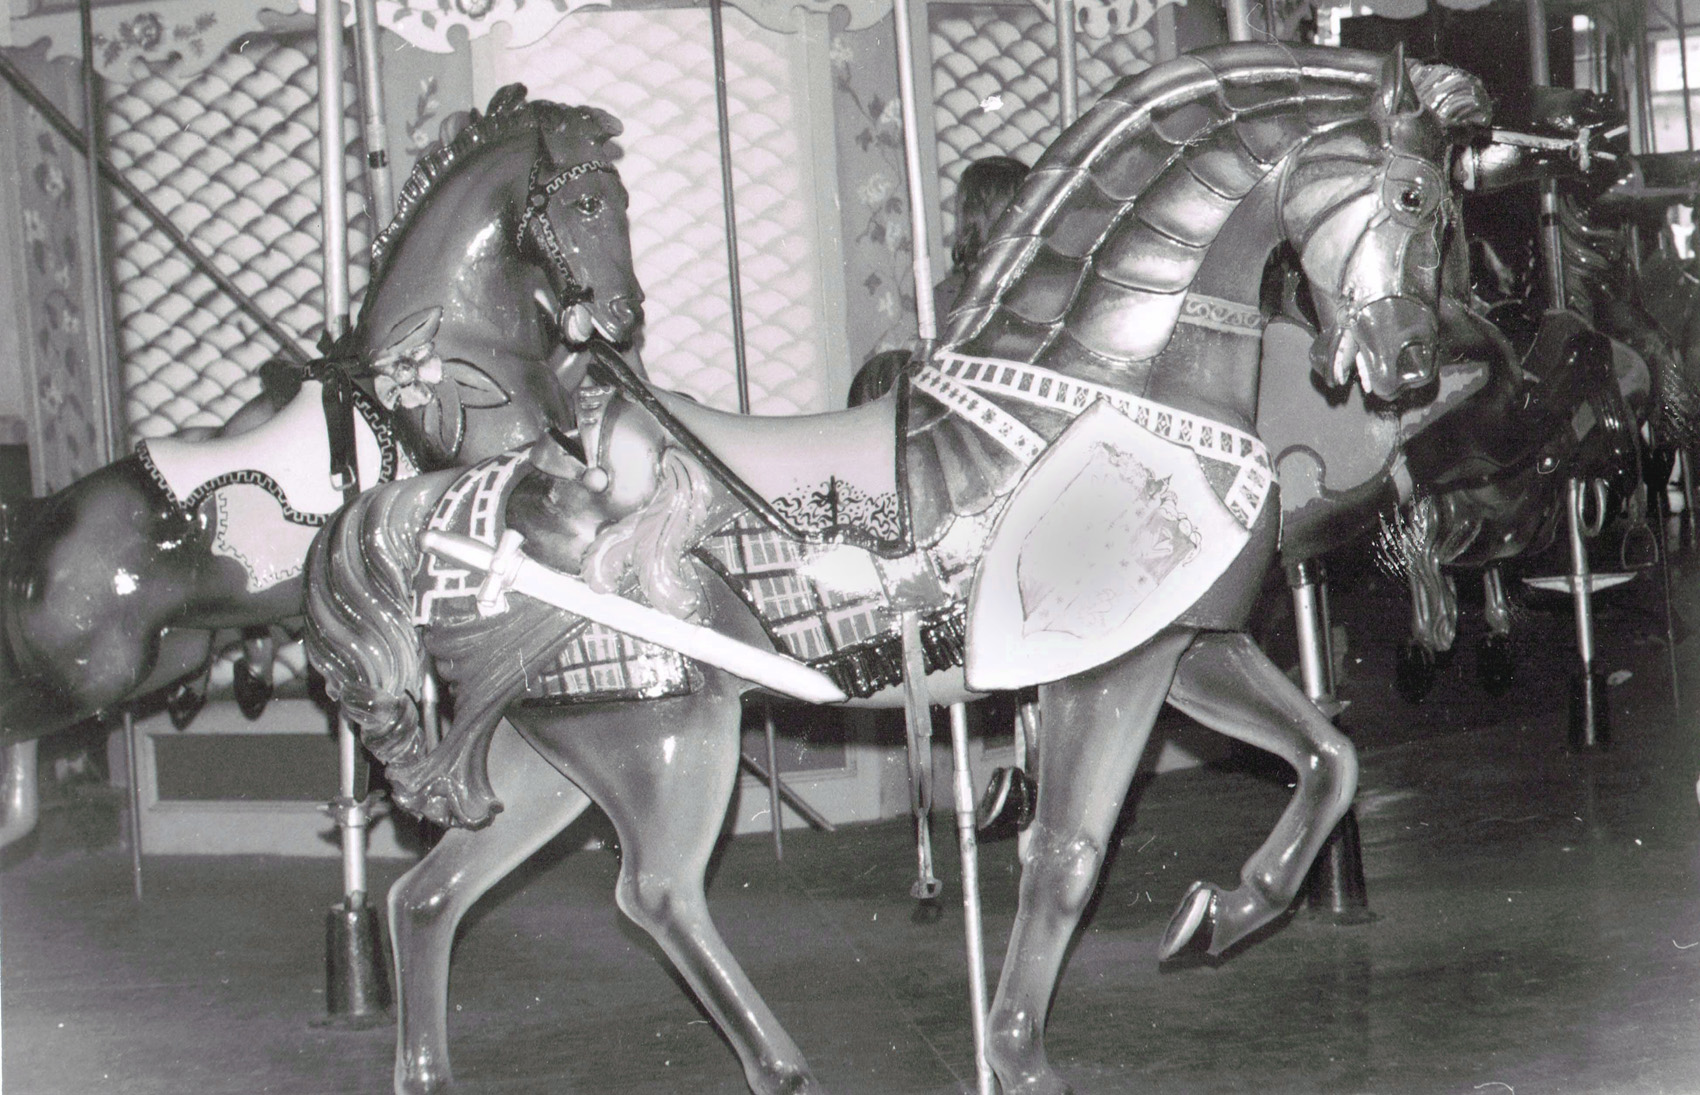 1907-PTC-14-carousel-horse-armored-Ghost-Town-BWC